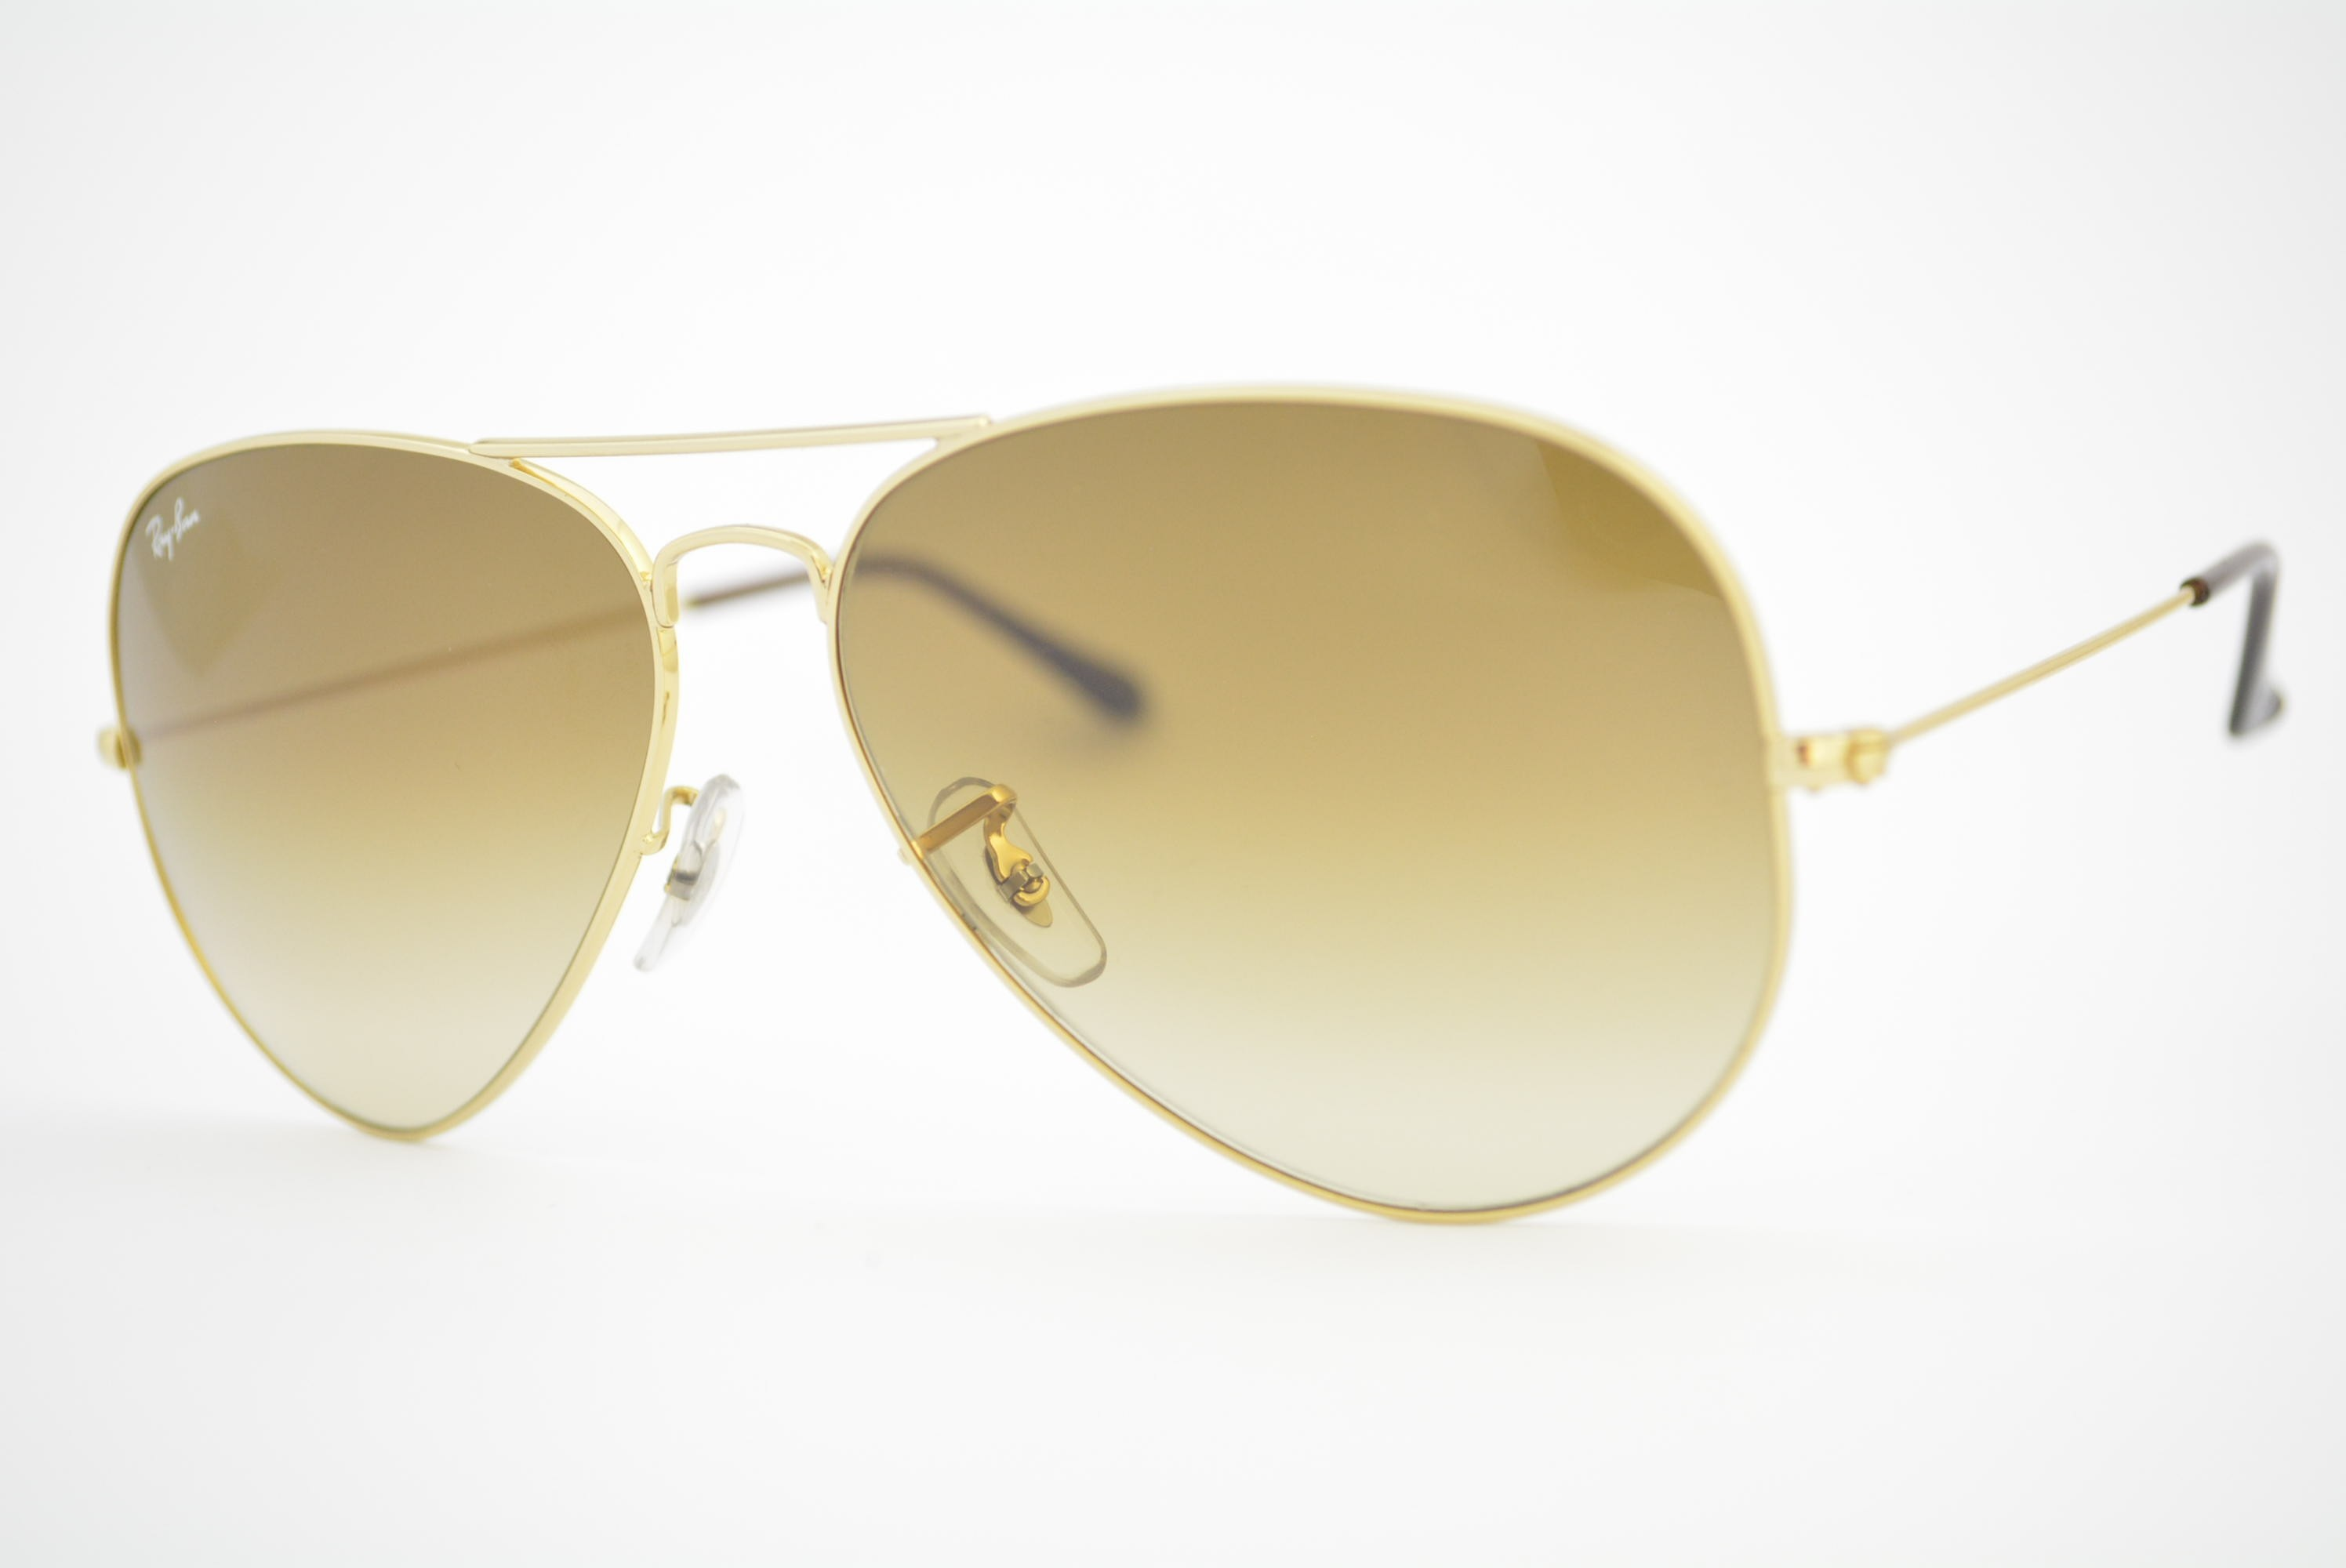 óculos de sol Ray Ban aviator large mod rb3025L 001 51 tamanho 58 ... 6952bc6ebe